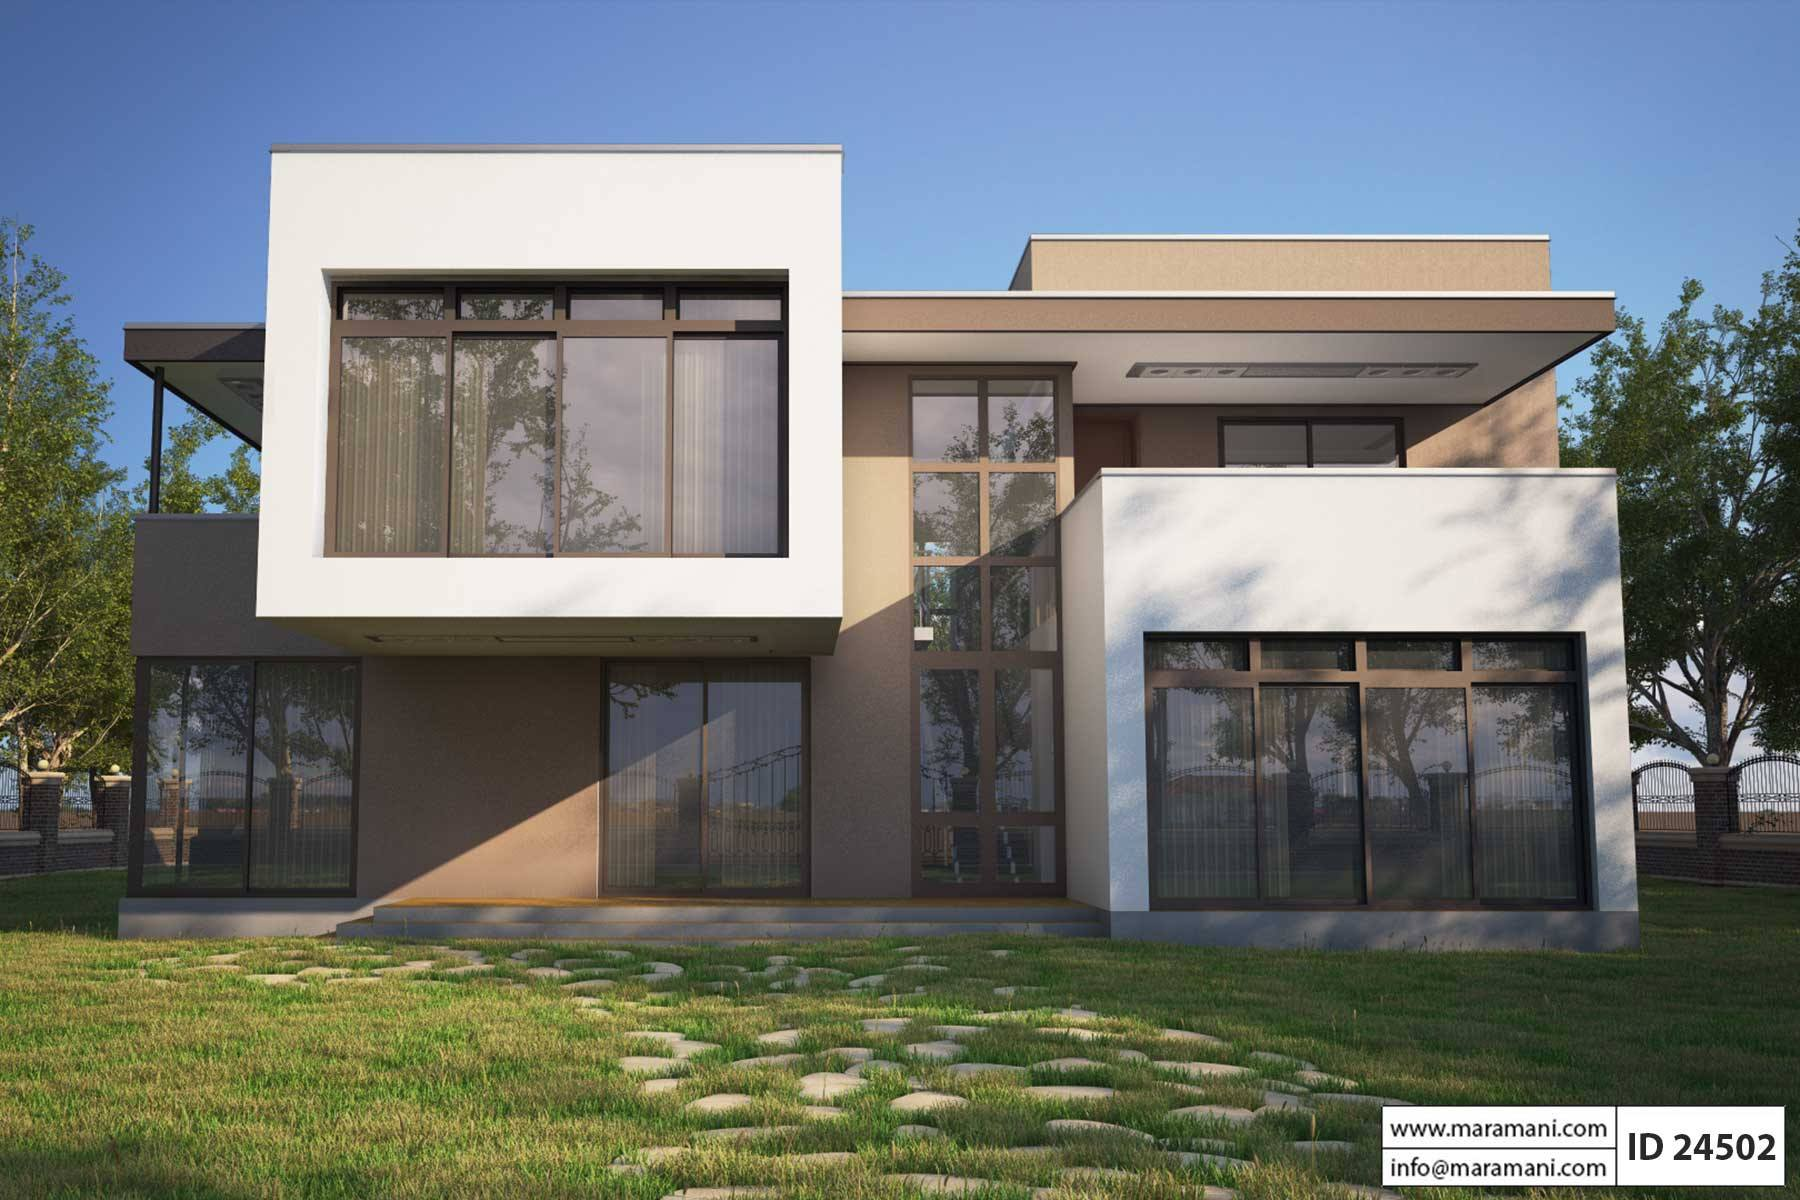 4 bedroom modern house plan id 24502 house plans maramani for Four bedroom maisonette plans